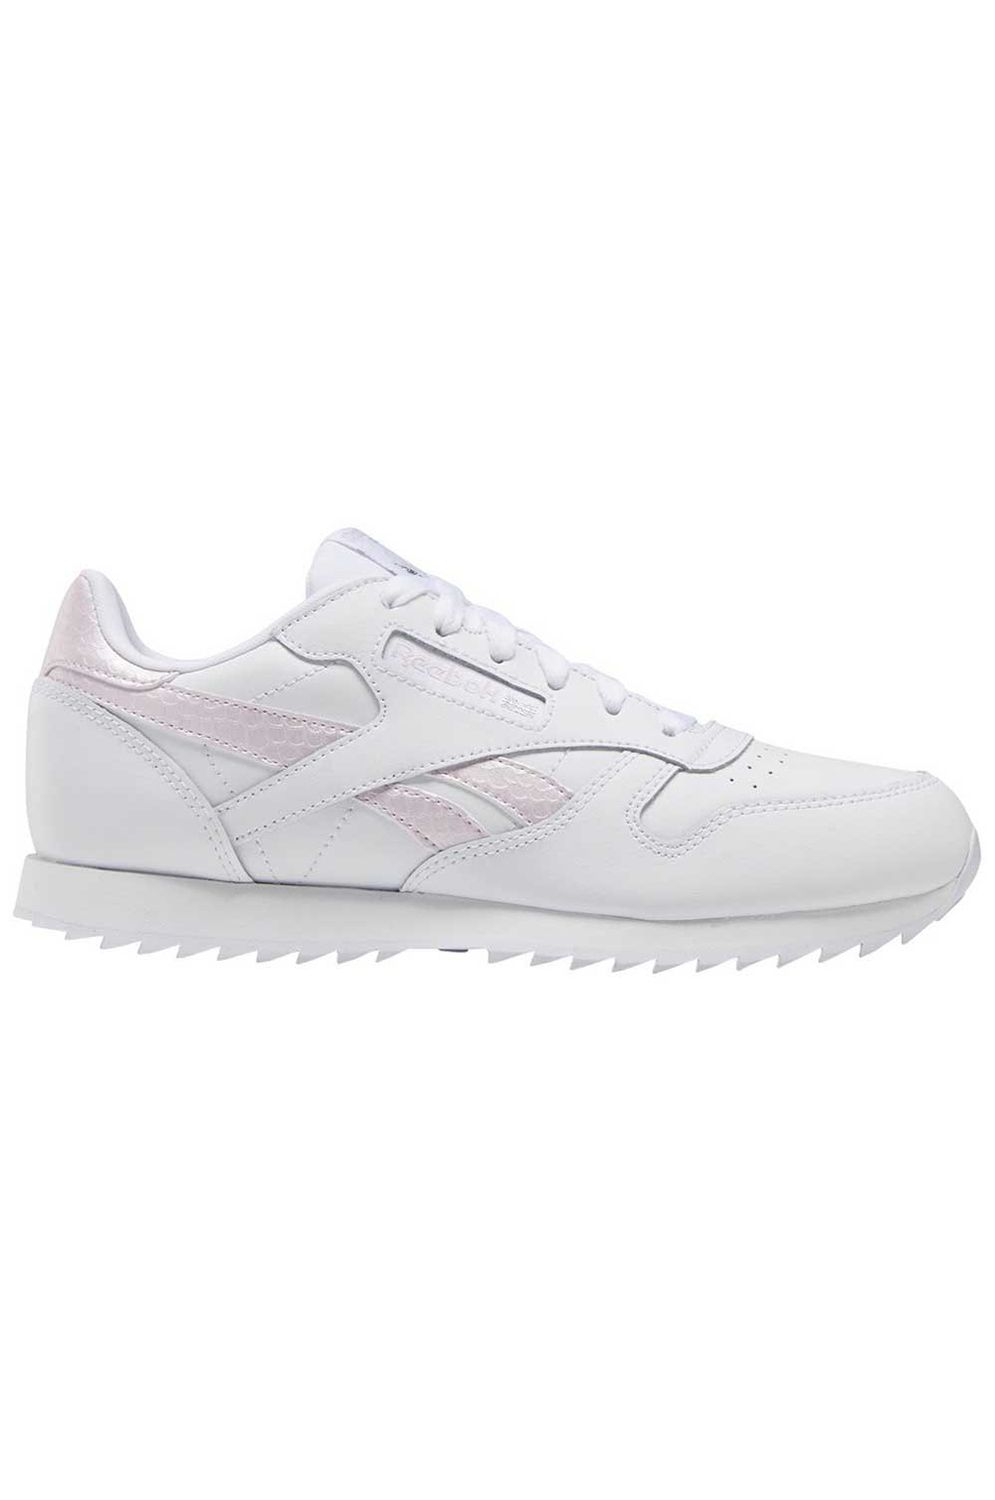 Reebok Shoes CLASSIC LEATHER White/Pixel Pink/None